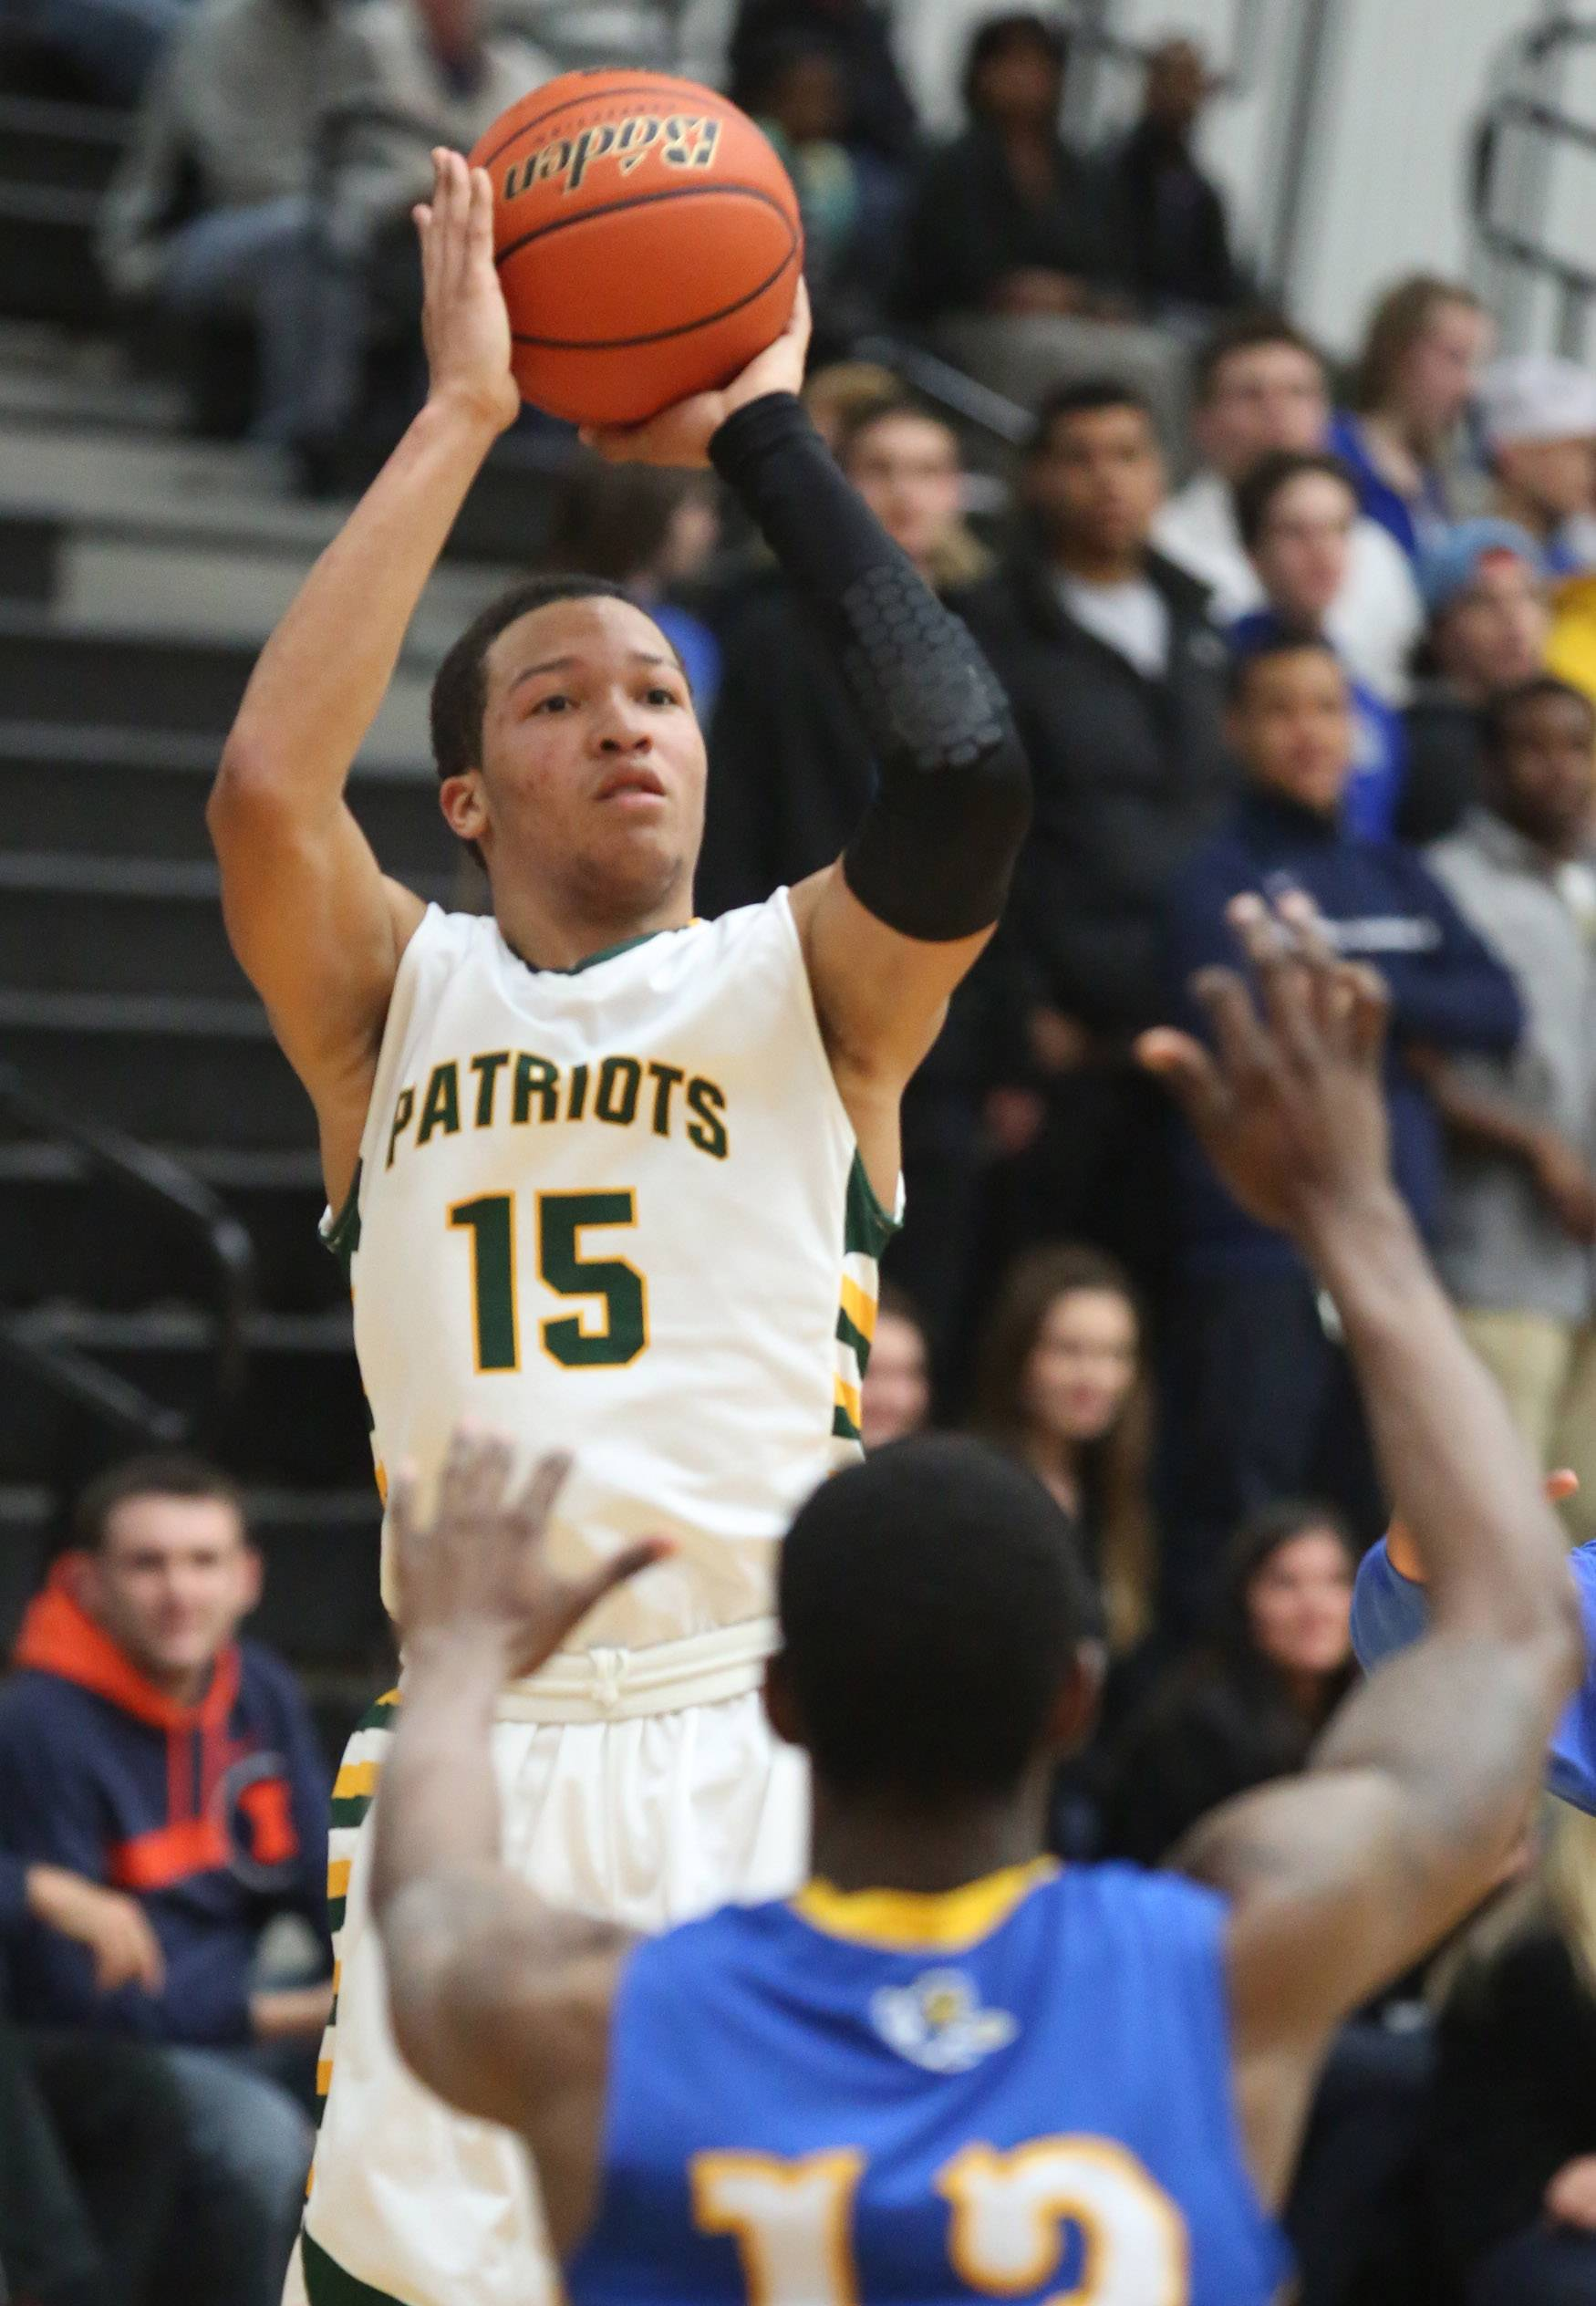 Stevenson guard Jalen Brunson measures a 3-pointer in the Patriots' 79-59 victory over Warren in Class 4A regional play Friday at McHenry.